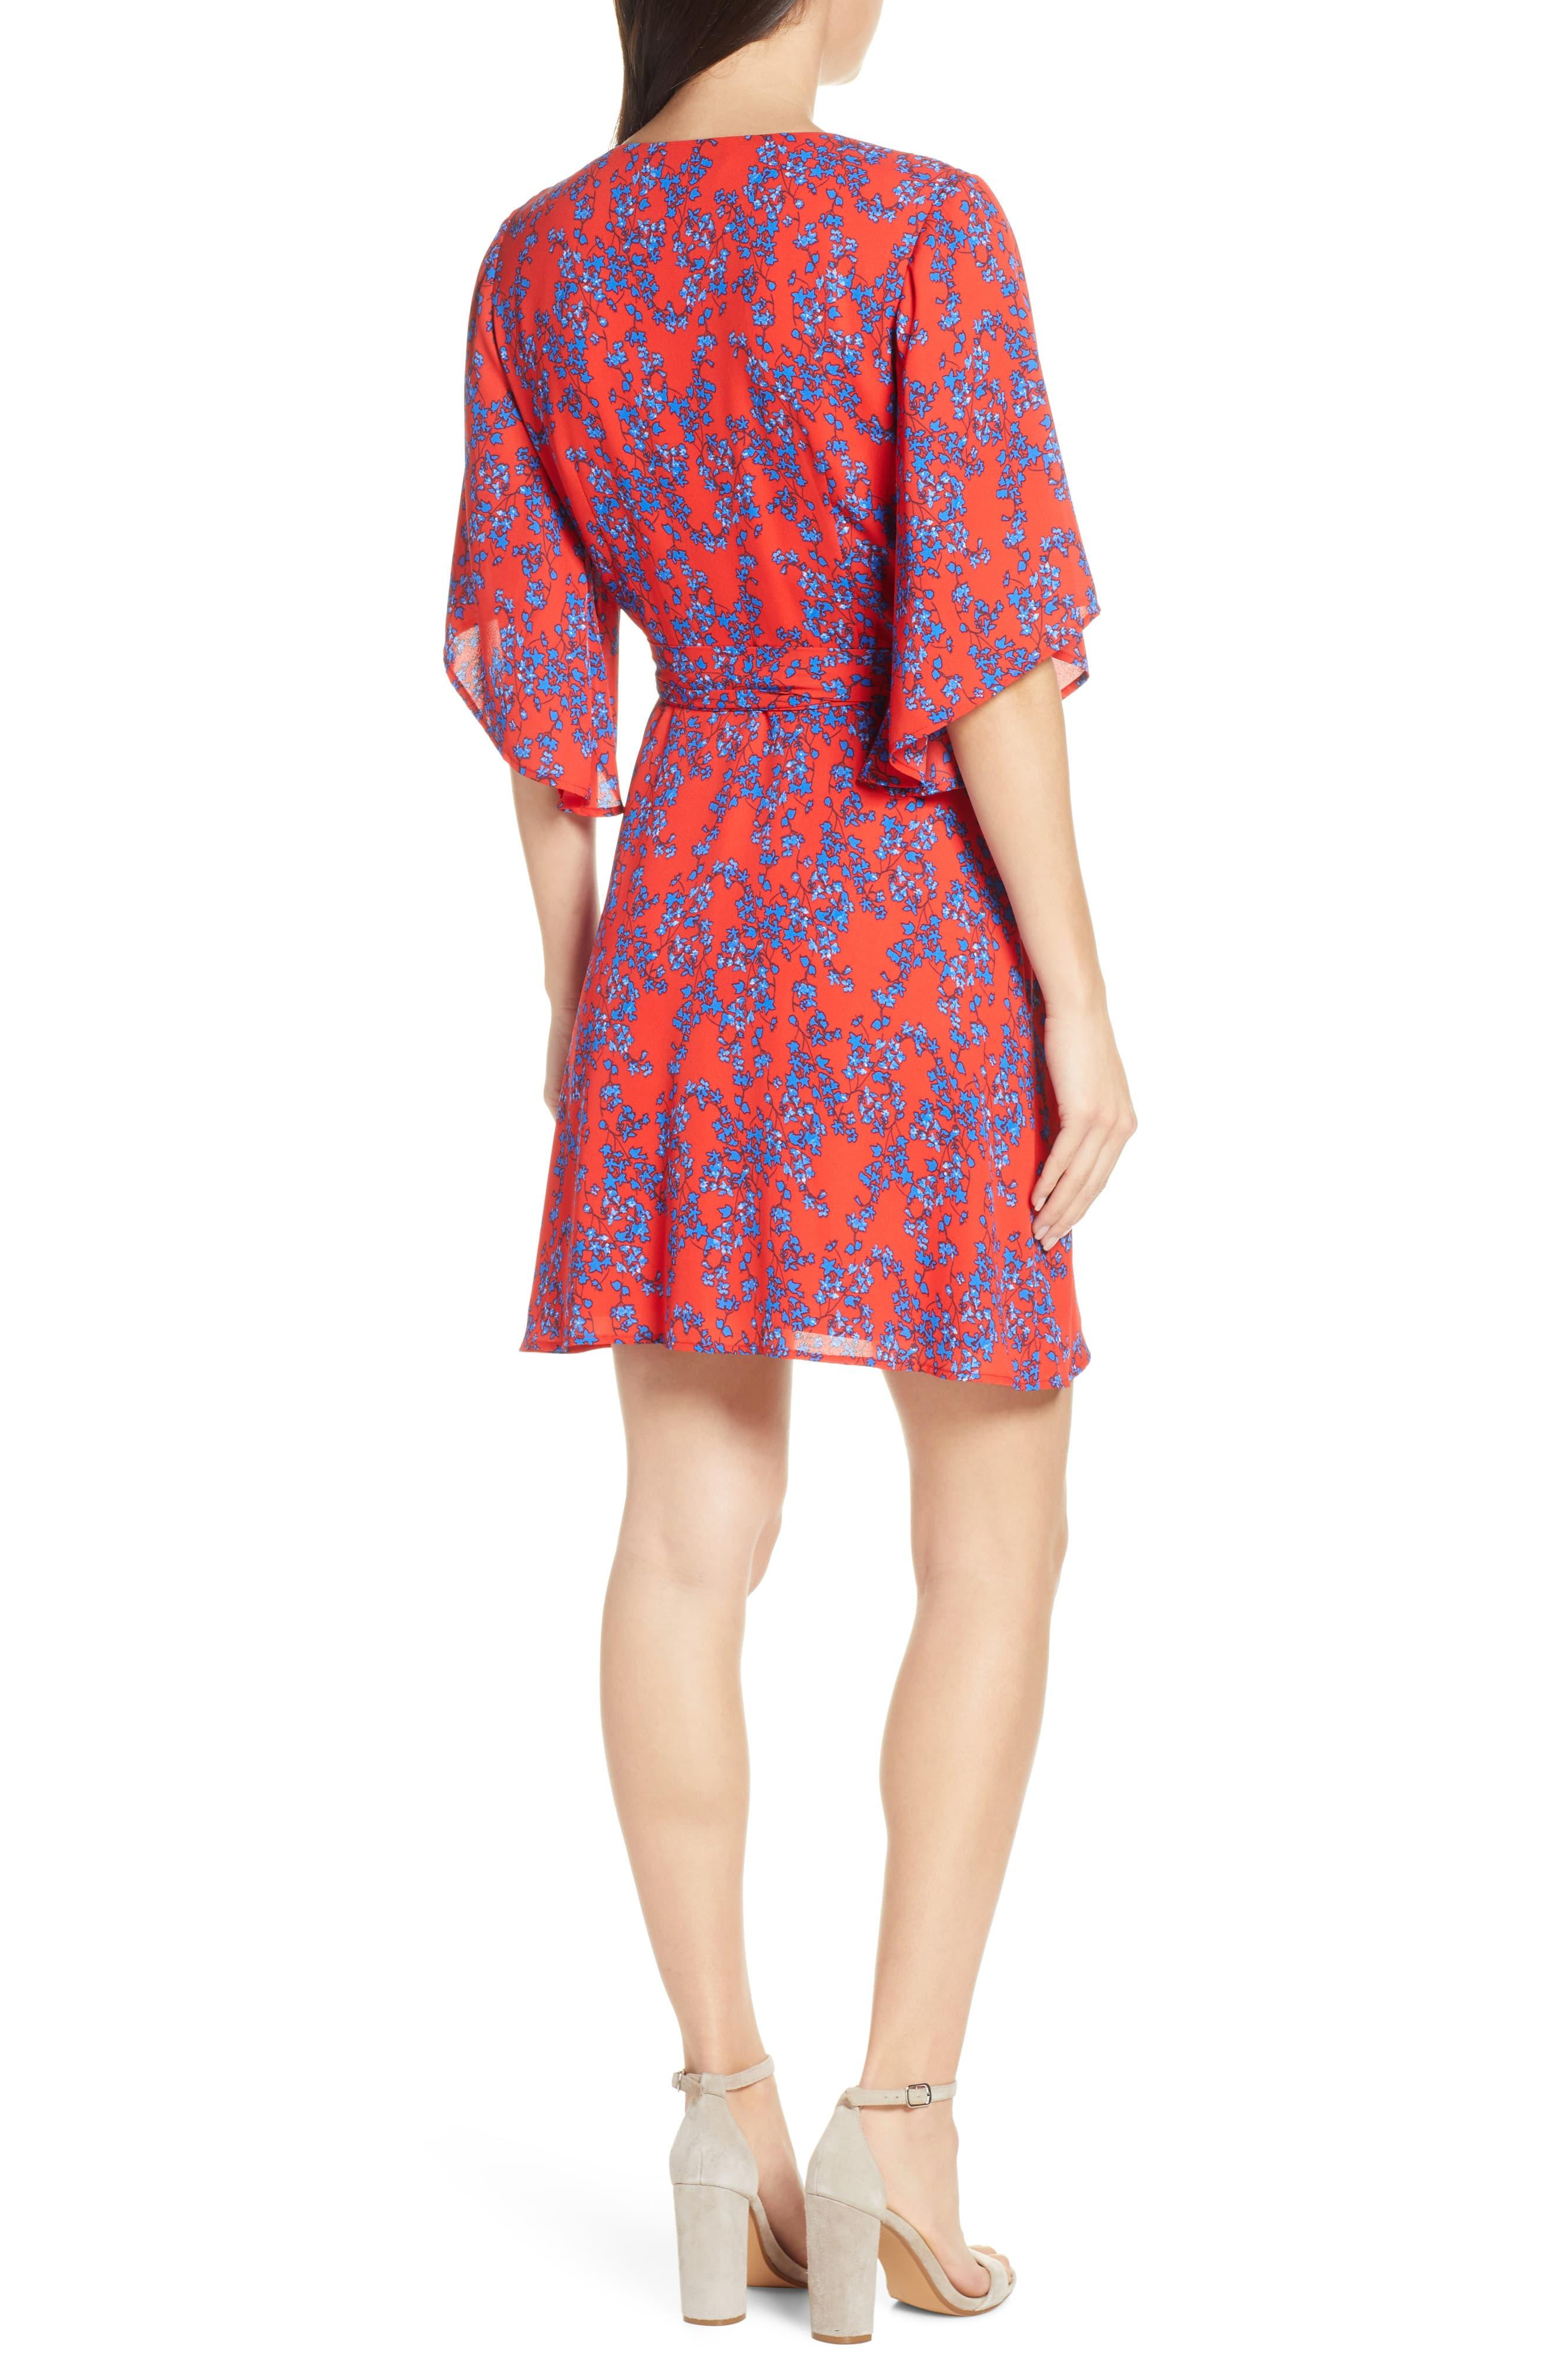 6261ad81e333 Charles Henry - Red Floral Wrap Dress - Lyst. View fullscreen